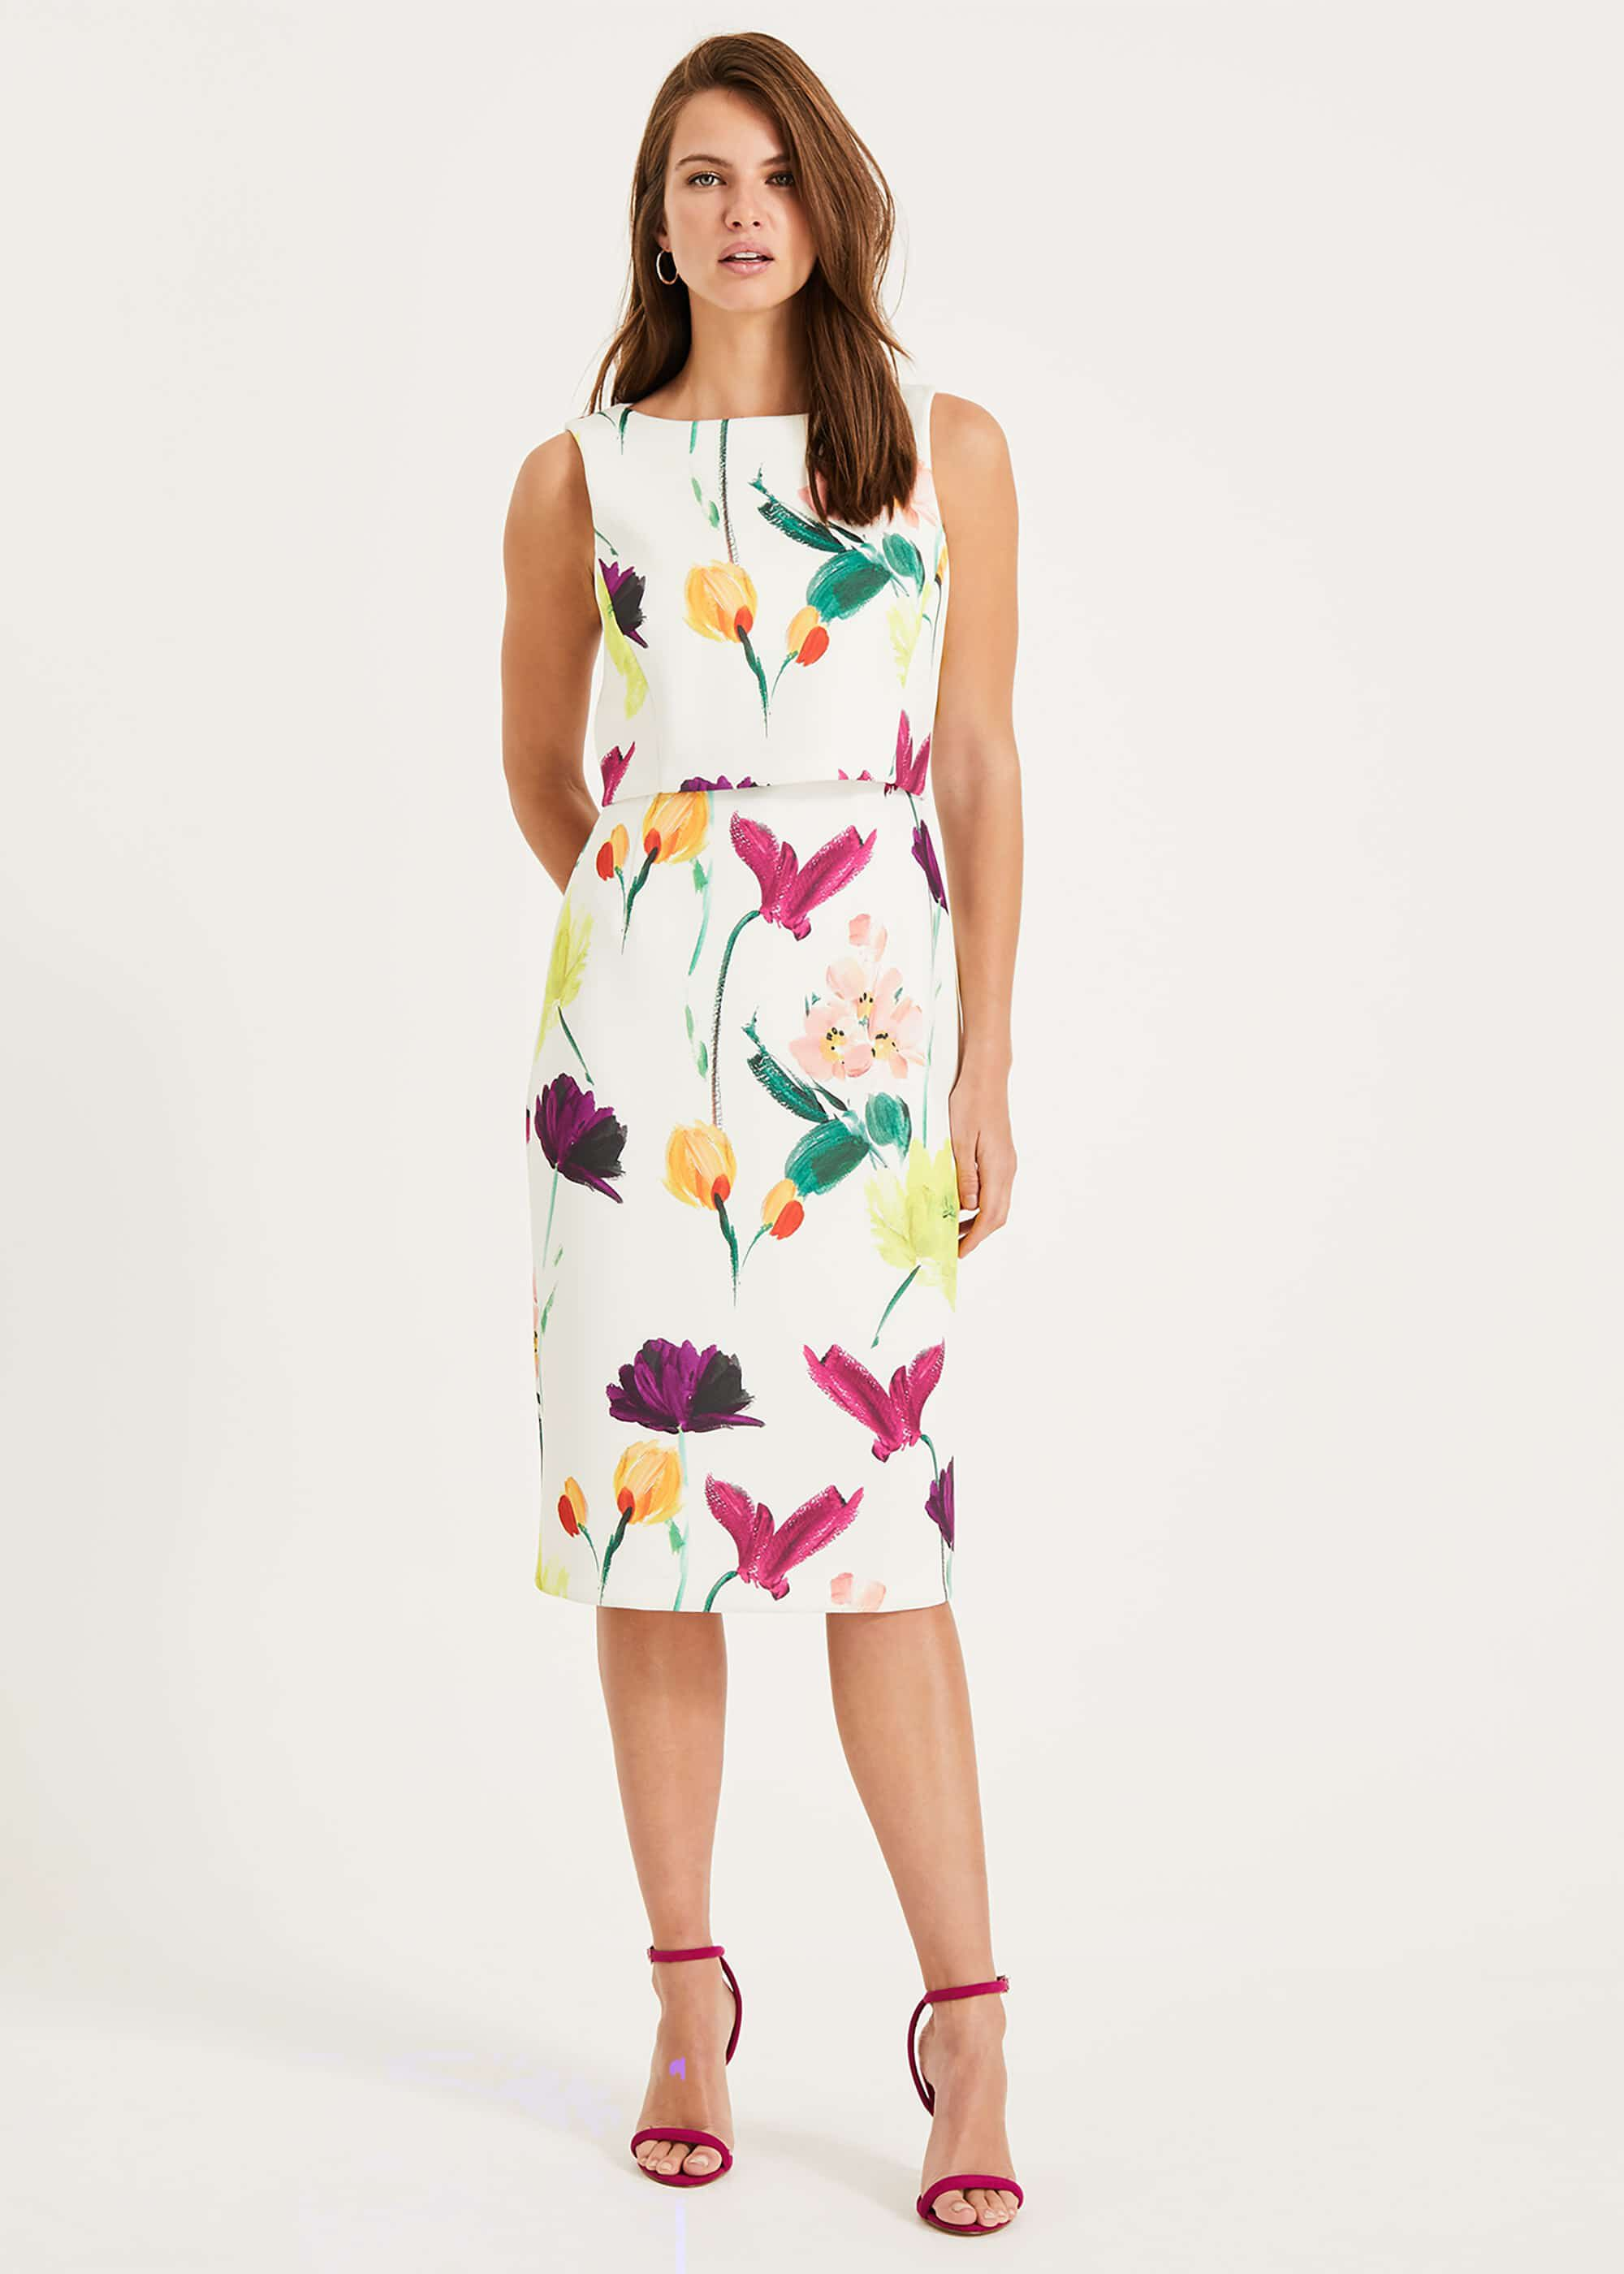 Phase Eight Elin Floral Dress, Cream, Fitted, Occasion Dress